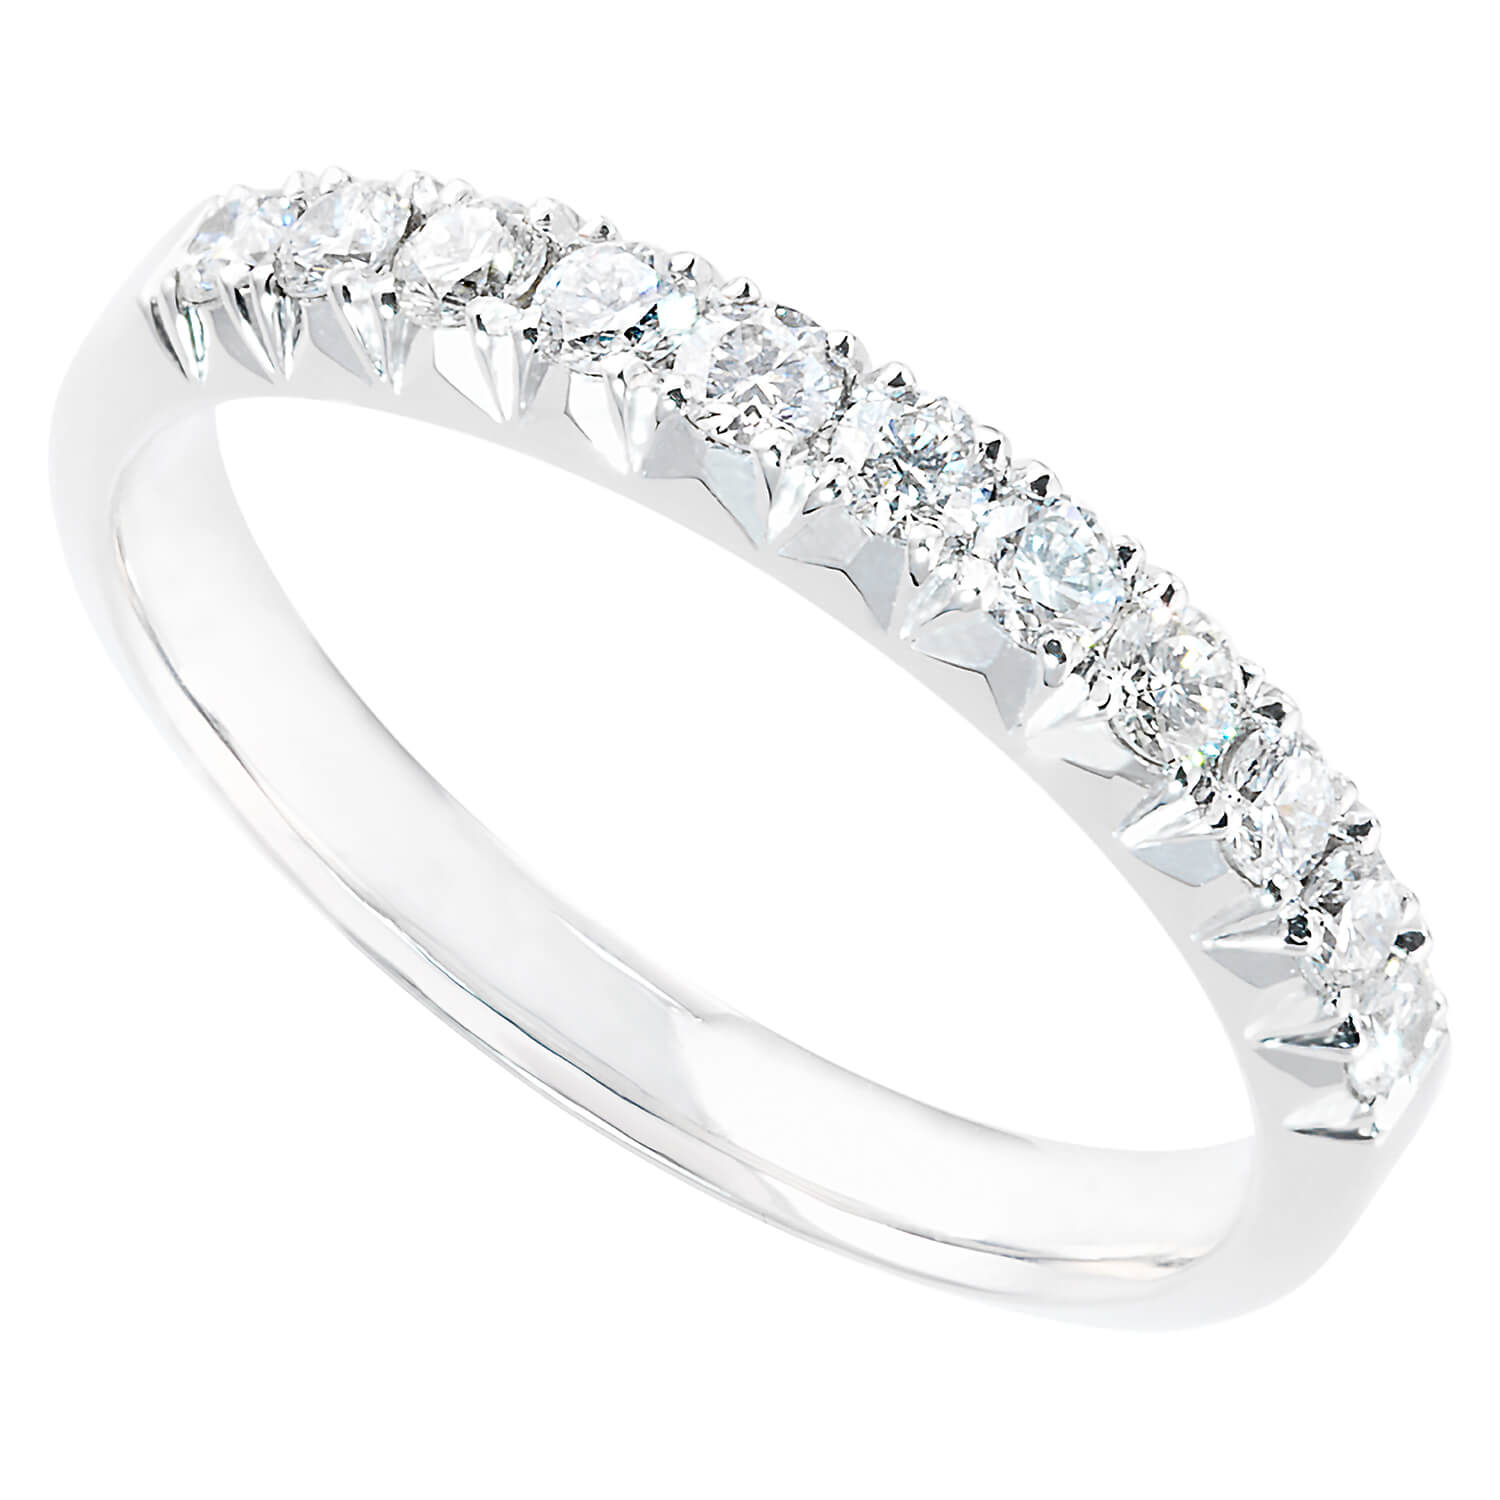 Platinum 0.36 carat diamond eternity ring